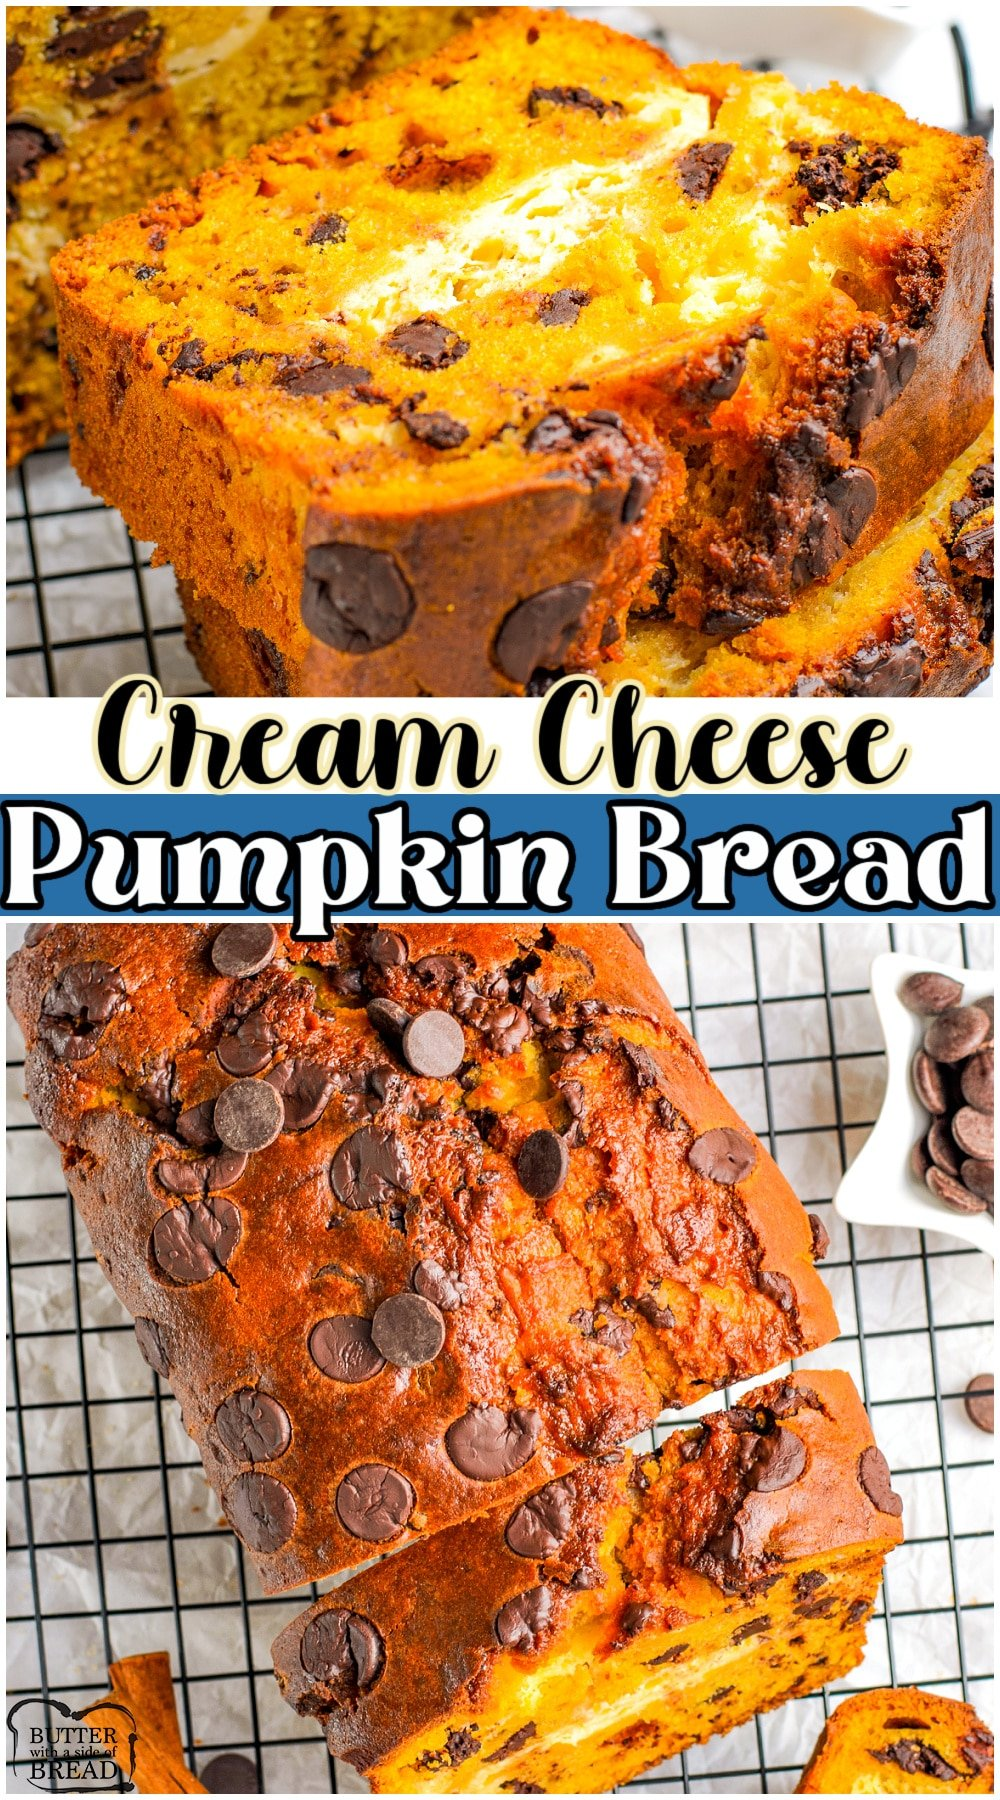 Spiced pumpkin cream cheese bread, packed with Fall flavors like pumpkin, cinnamon, ginger & nutmeg! Pumpkin sweet bread with a lovely swirl of cream cheese in the middle & topped with chocolate chips!